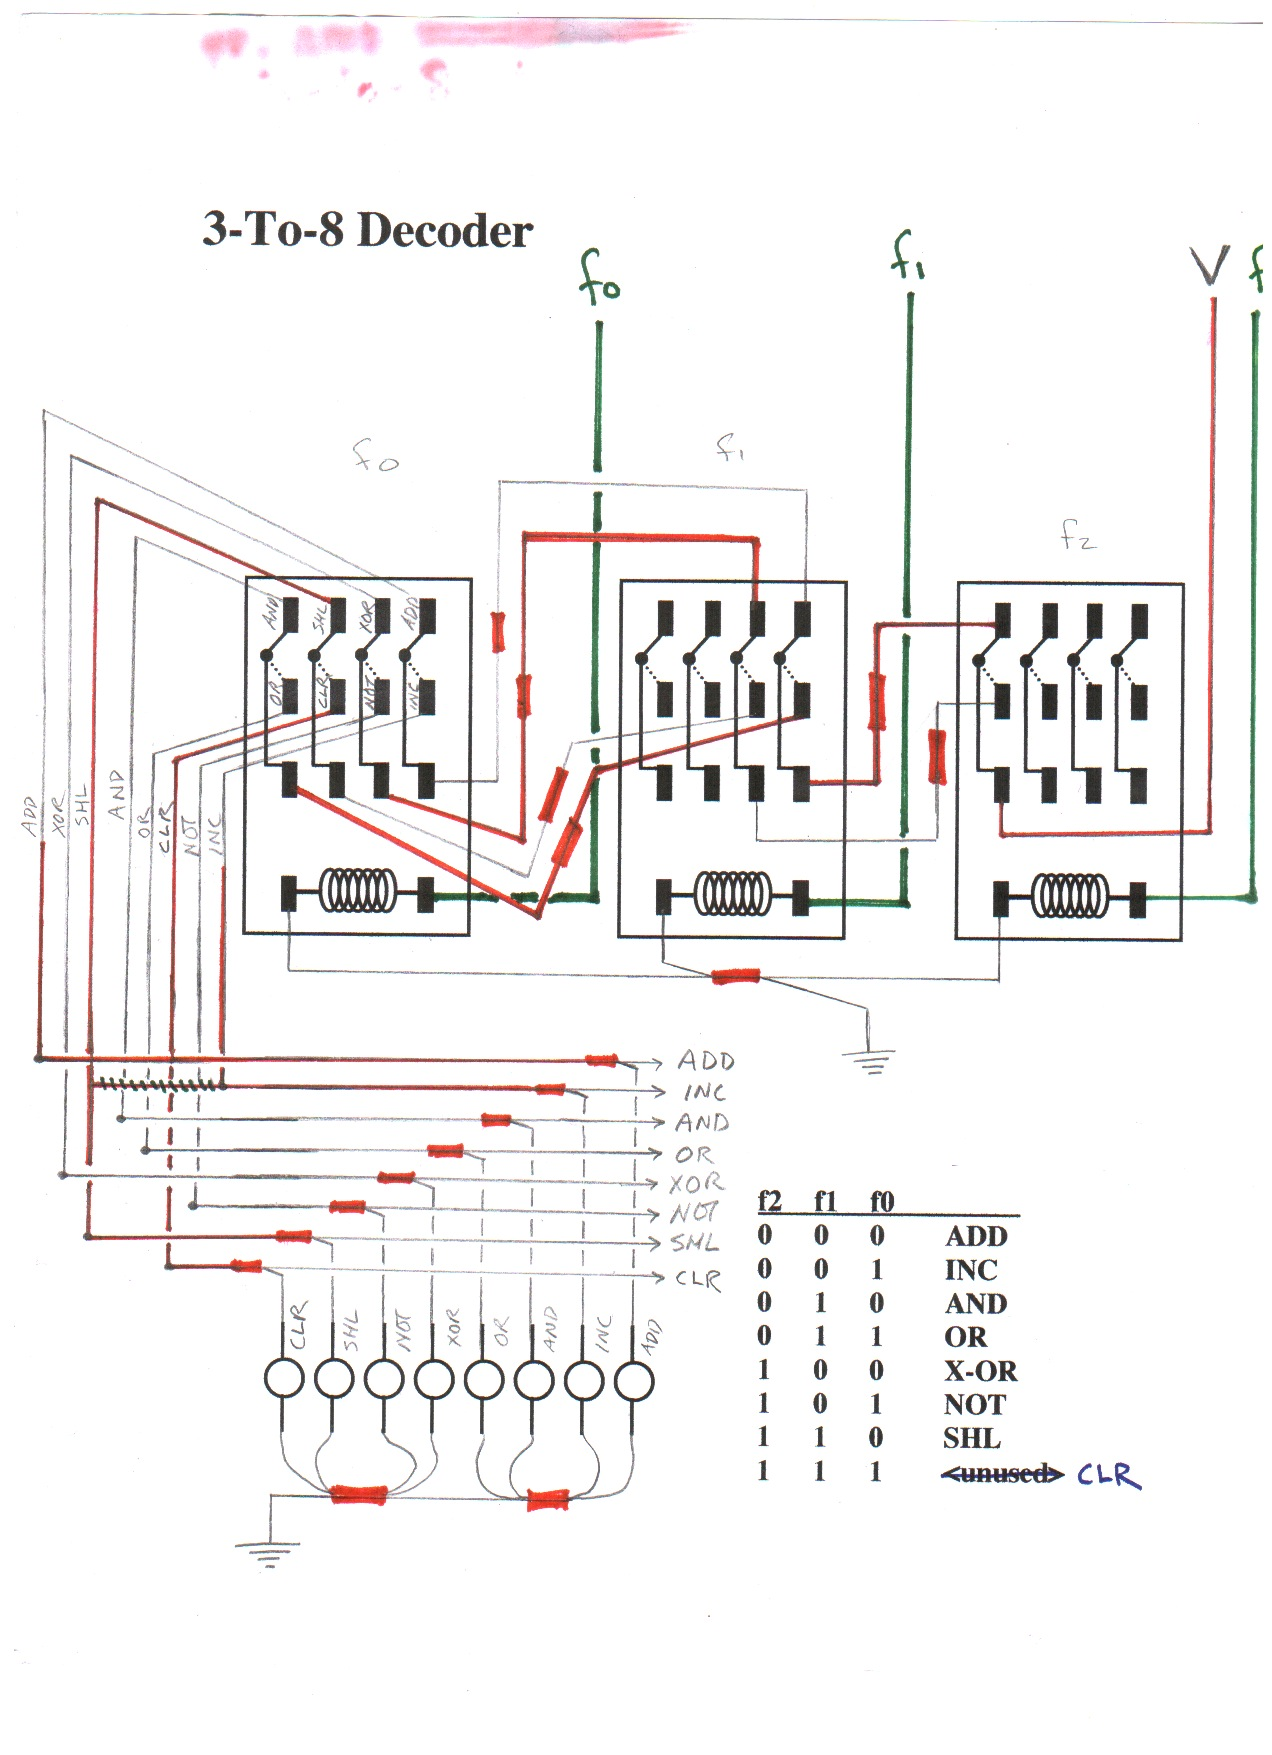 Circuit Diagrams The Following Schematic Shows Relay Wiring Diagram For 3 To 8 Decoder 2